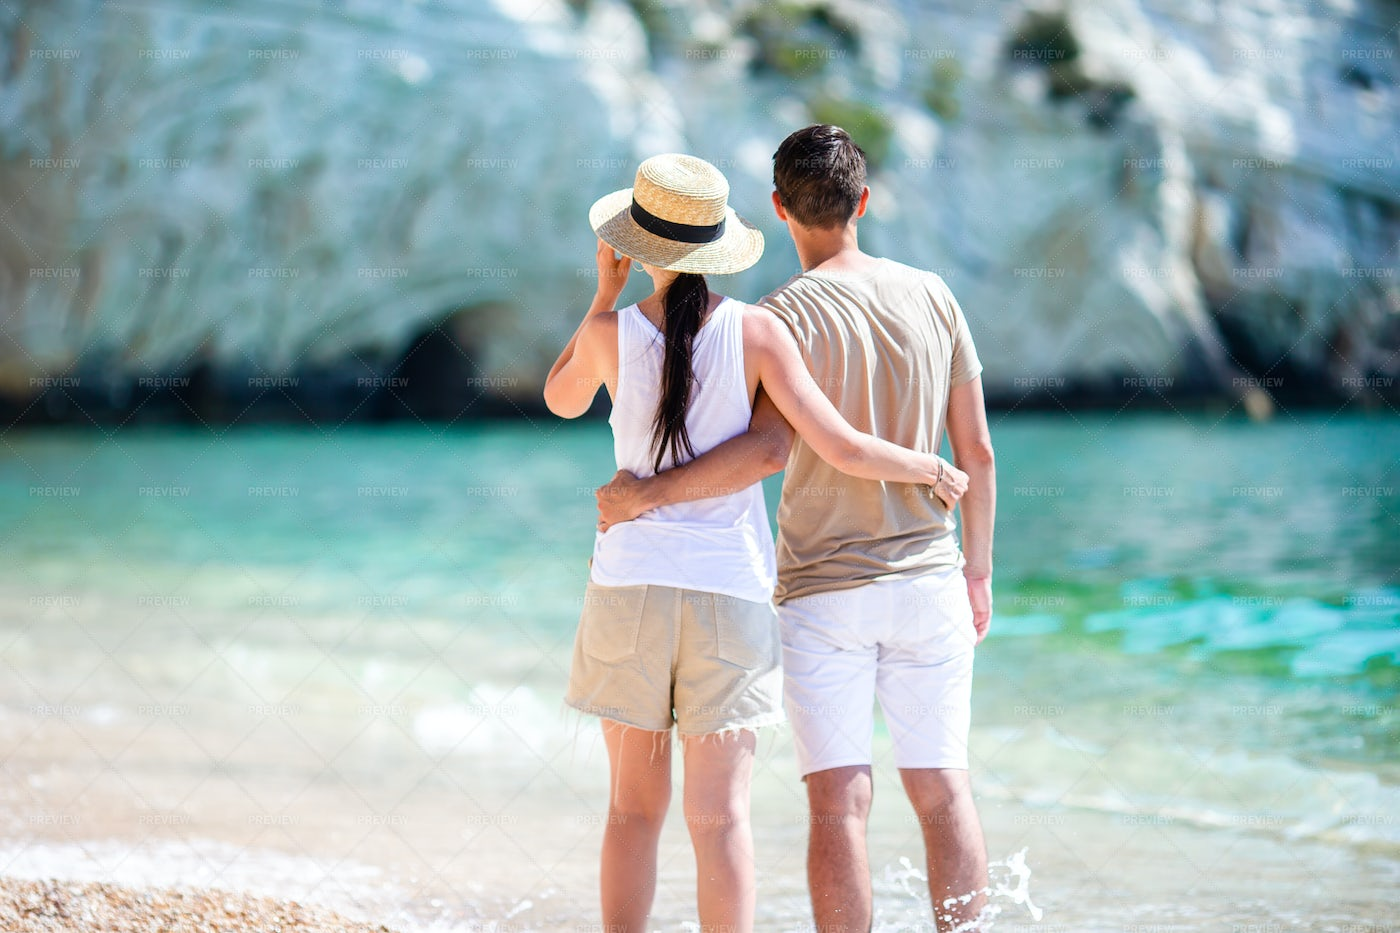 Couple Watching The Cliffs: Stock Photos